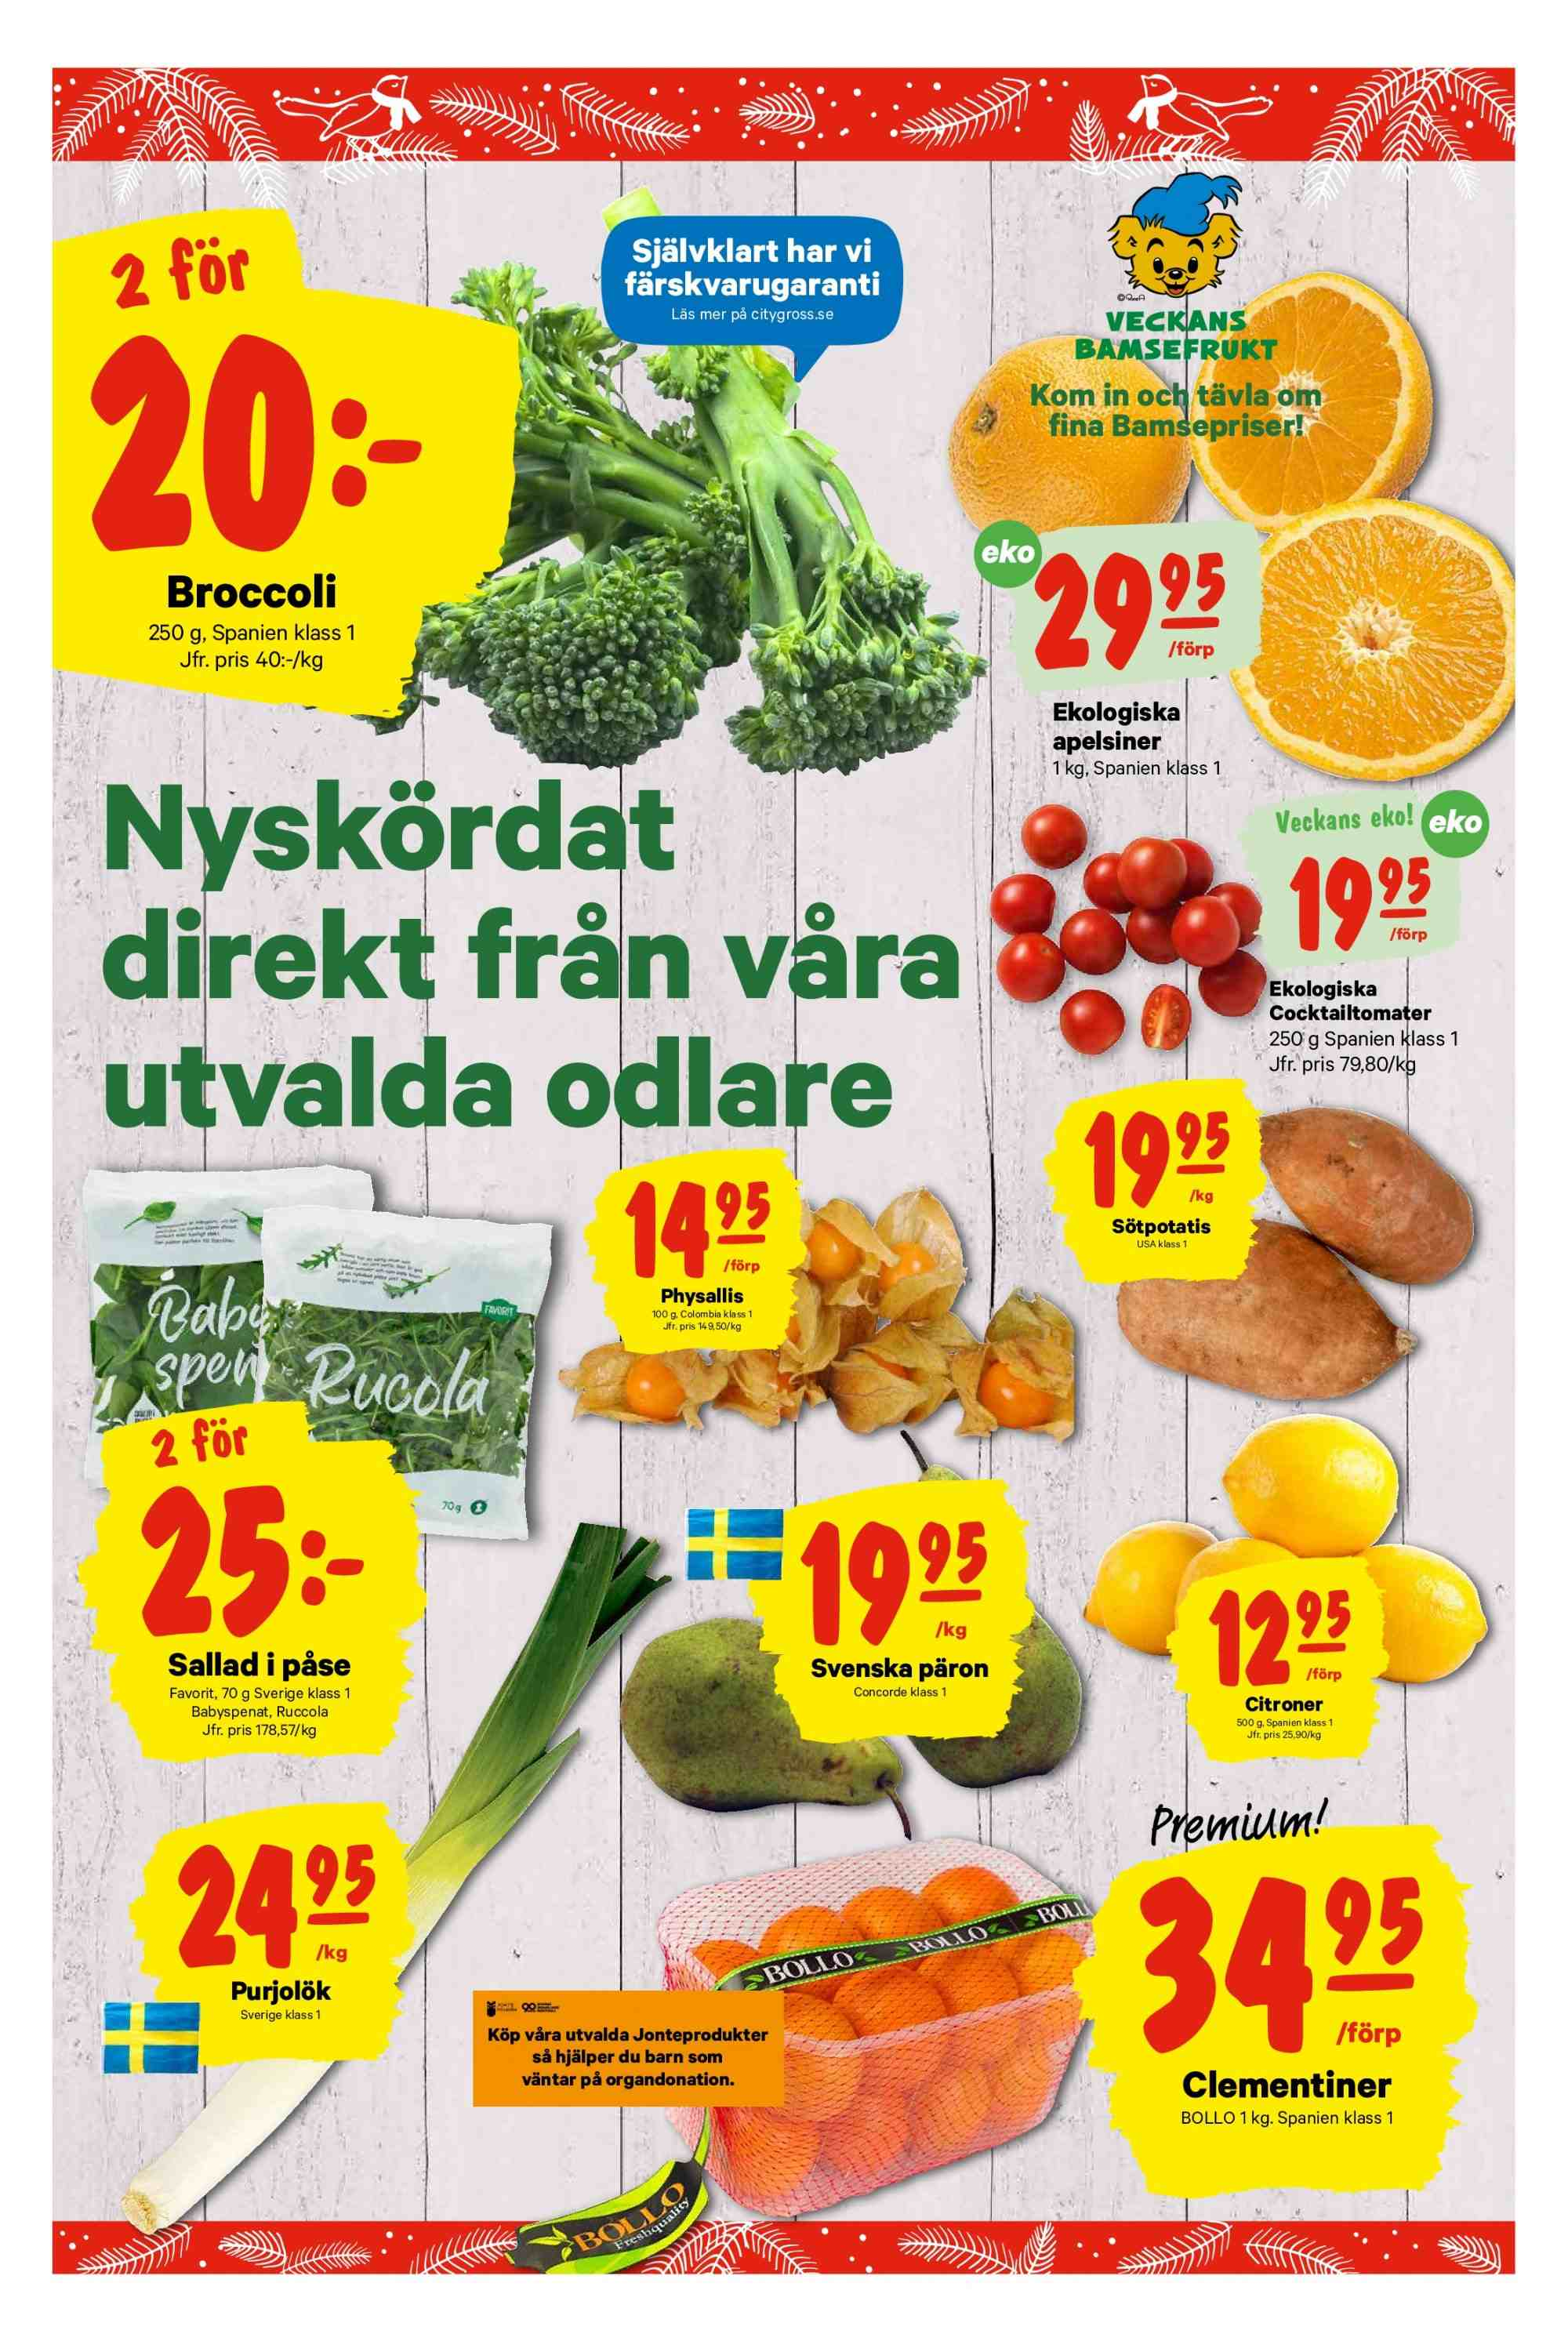 City Gross reklamblad - 3/12 2018 - 9/12 2018. Sida 6.